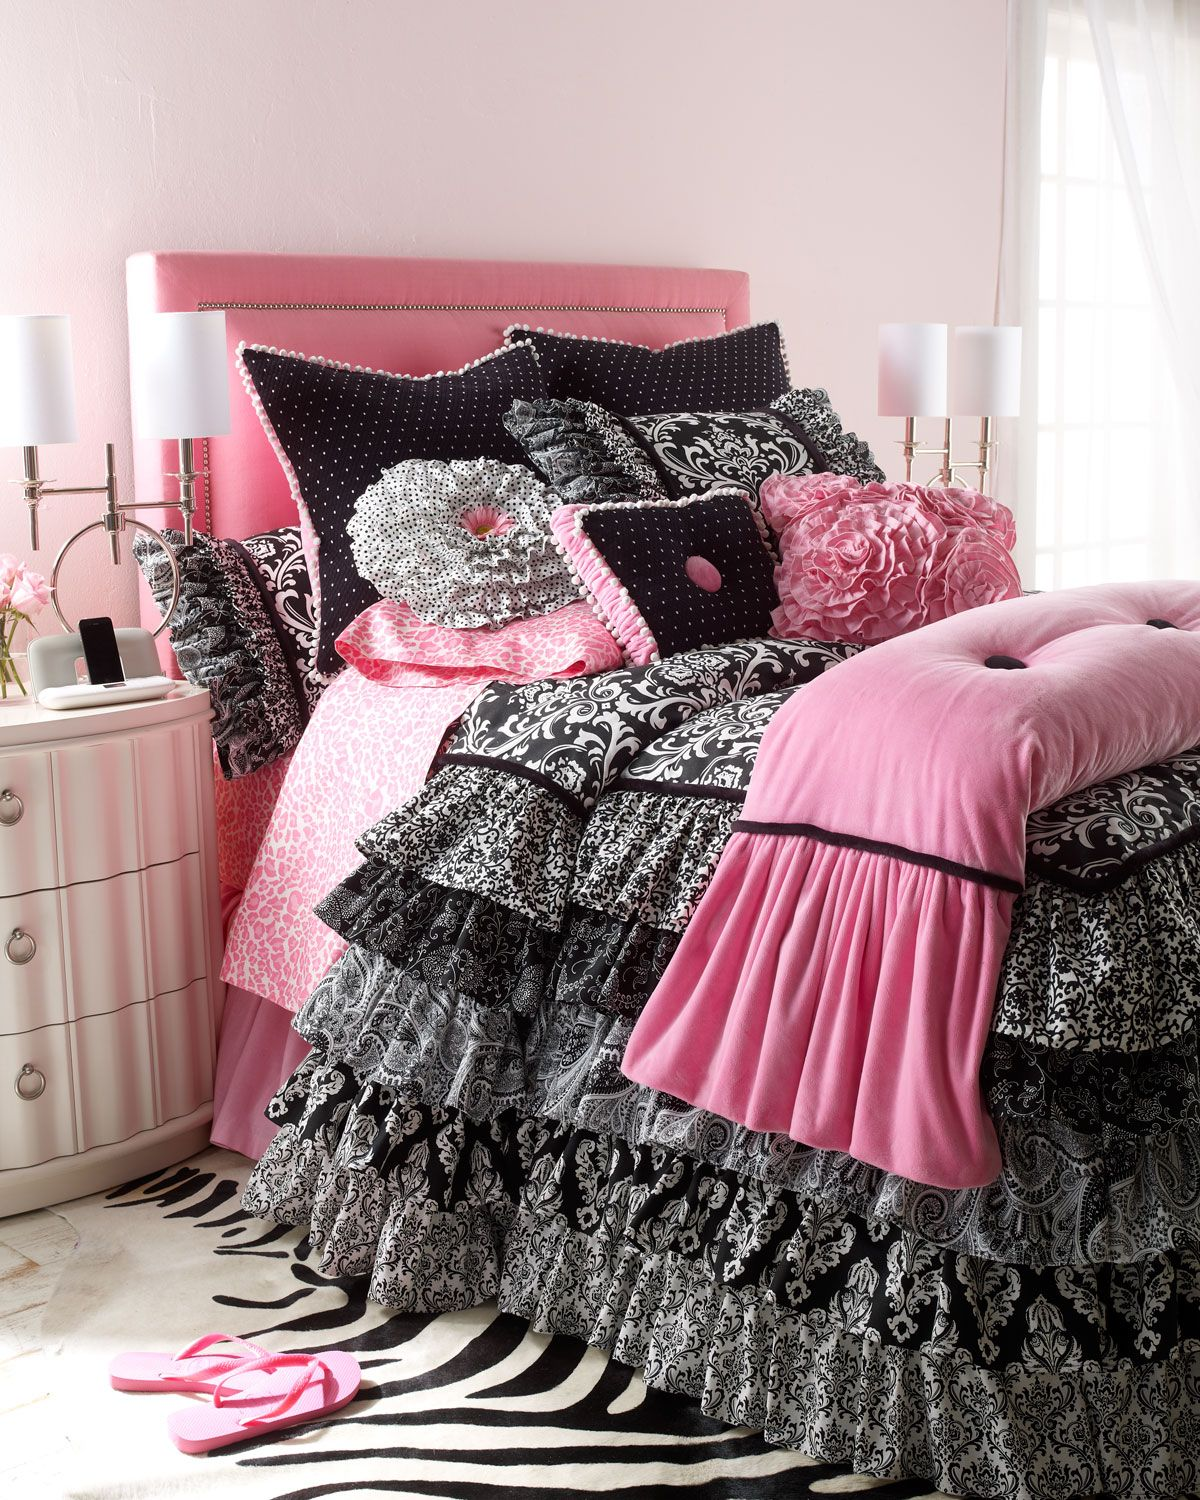 rogue designs yin yang bed linens pink and black. Black Bedroom Furniture Sets. Home Design Ideas